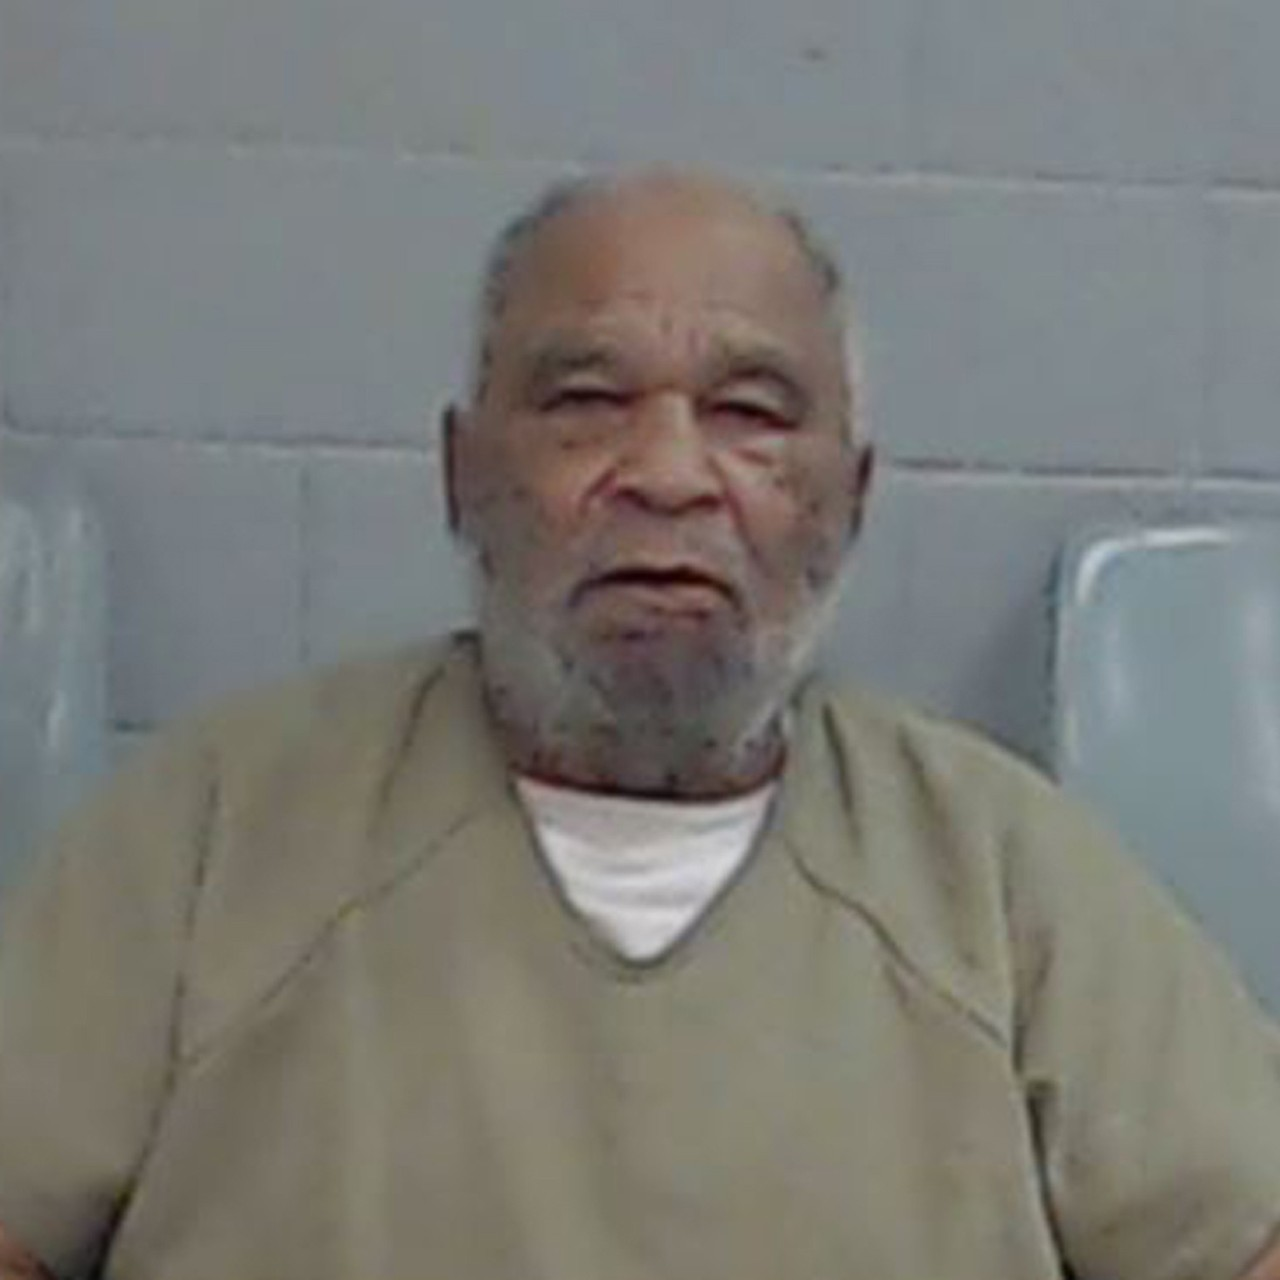 US serial killer Samuel Little now linked to more than 60